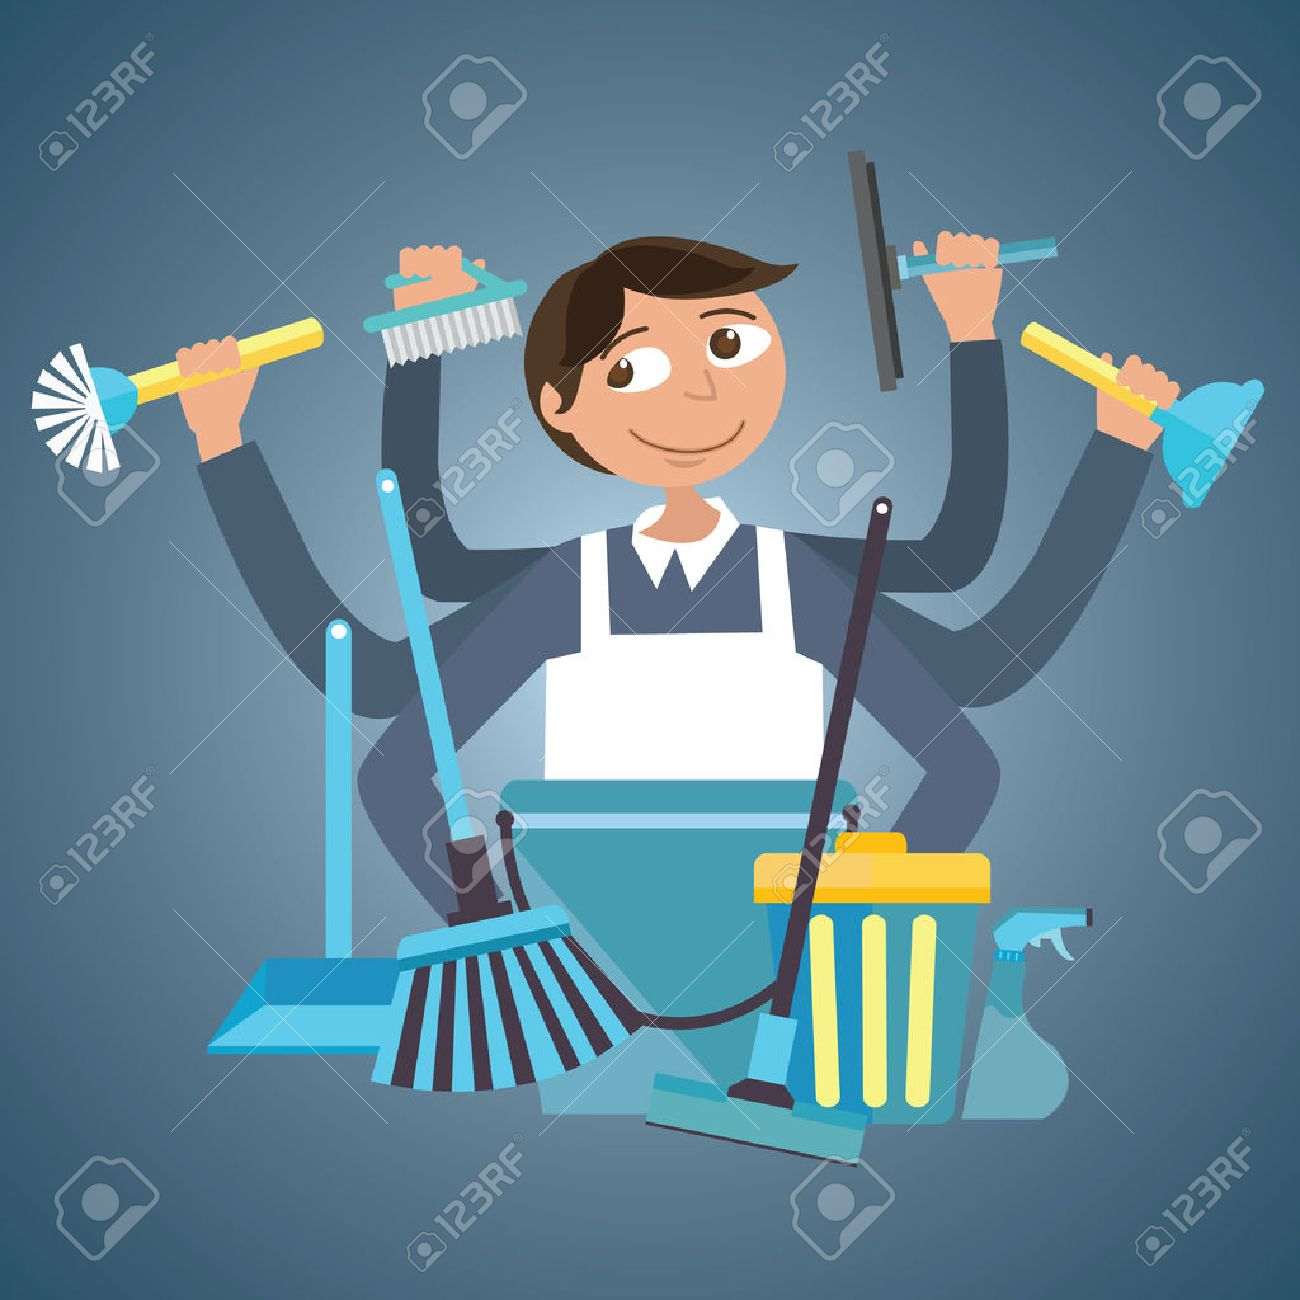 man male cleaning service house office cleaner tools wipe garbage container tools janitor brush spray vector drawing illustration - 53589020